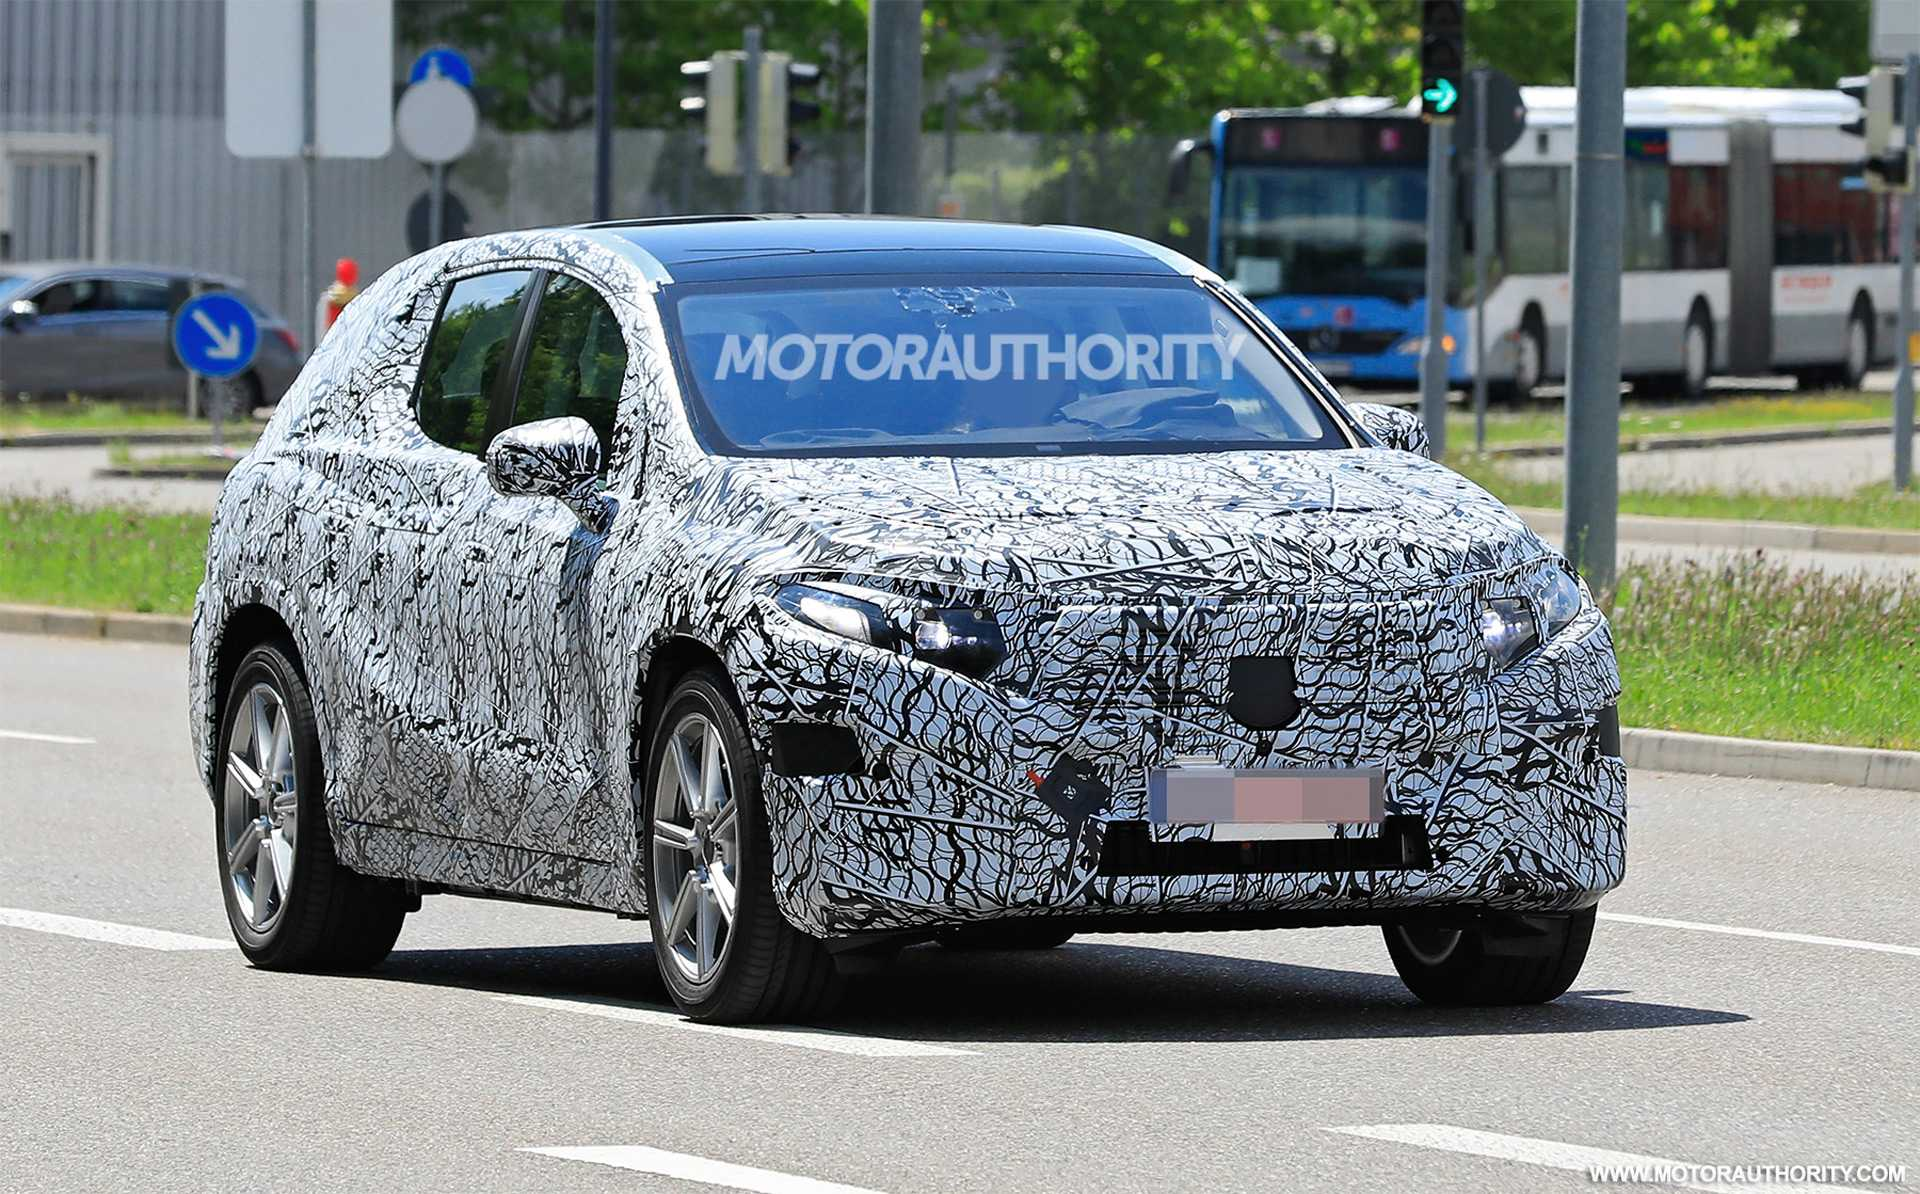 2023 Mercedes Benz EQ SUV will Mark its Entry into Fully EV Cars Lineup